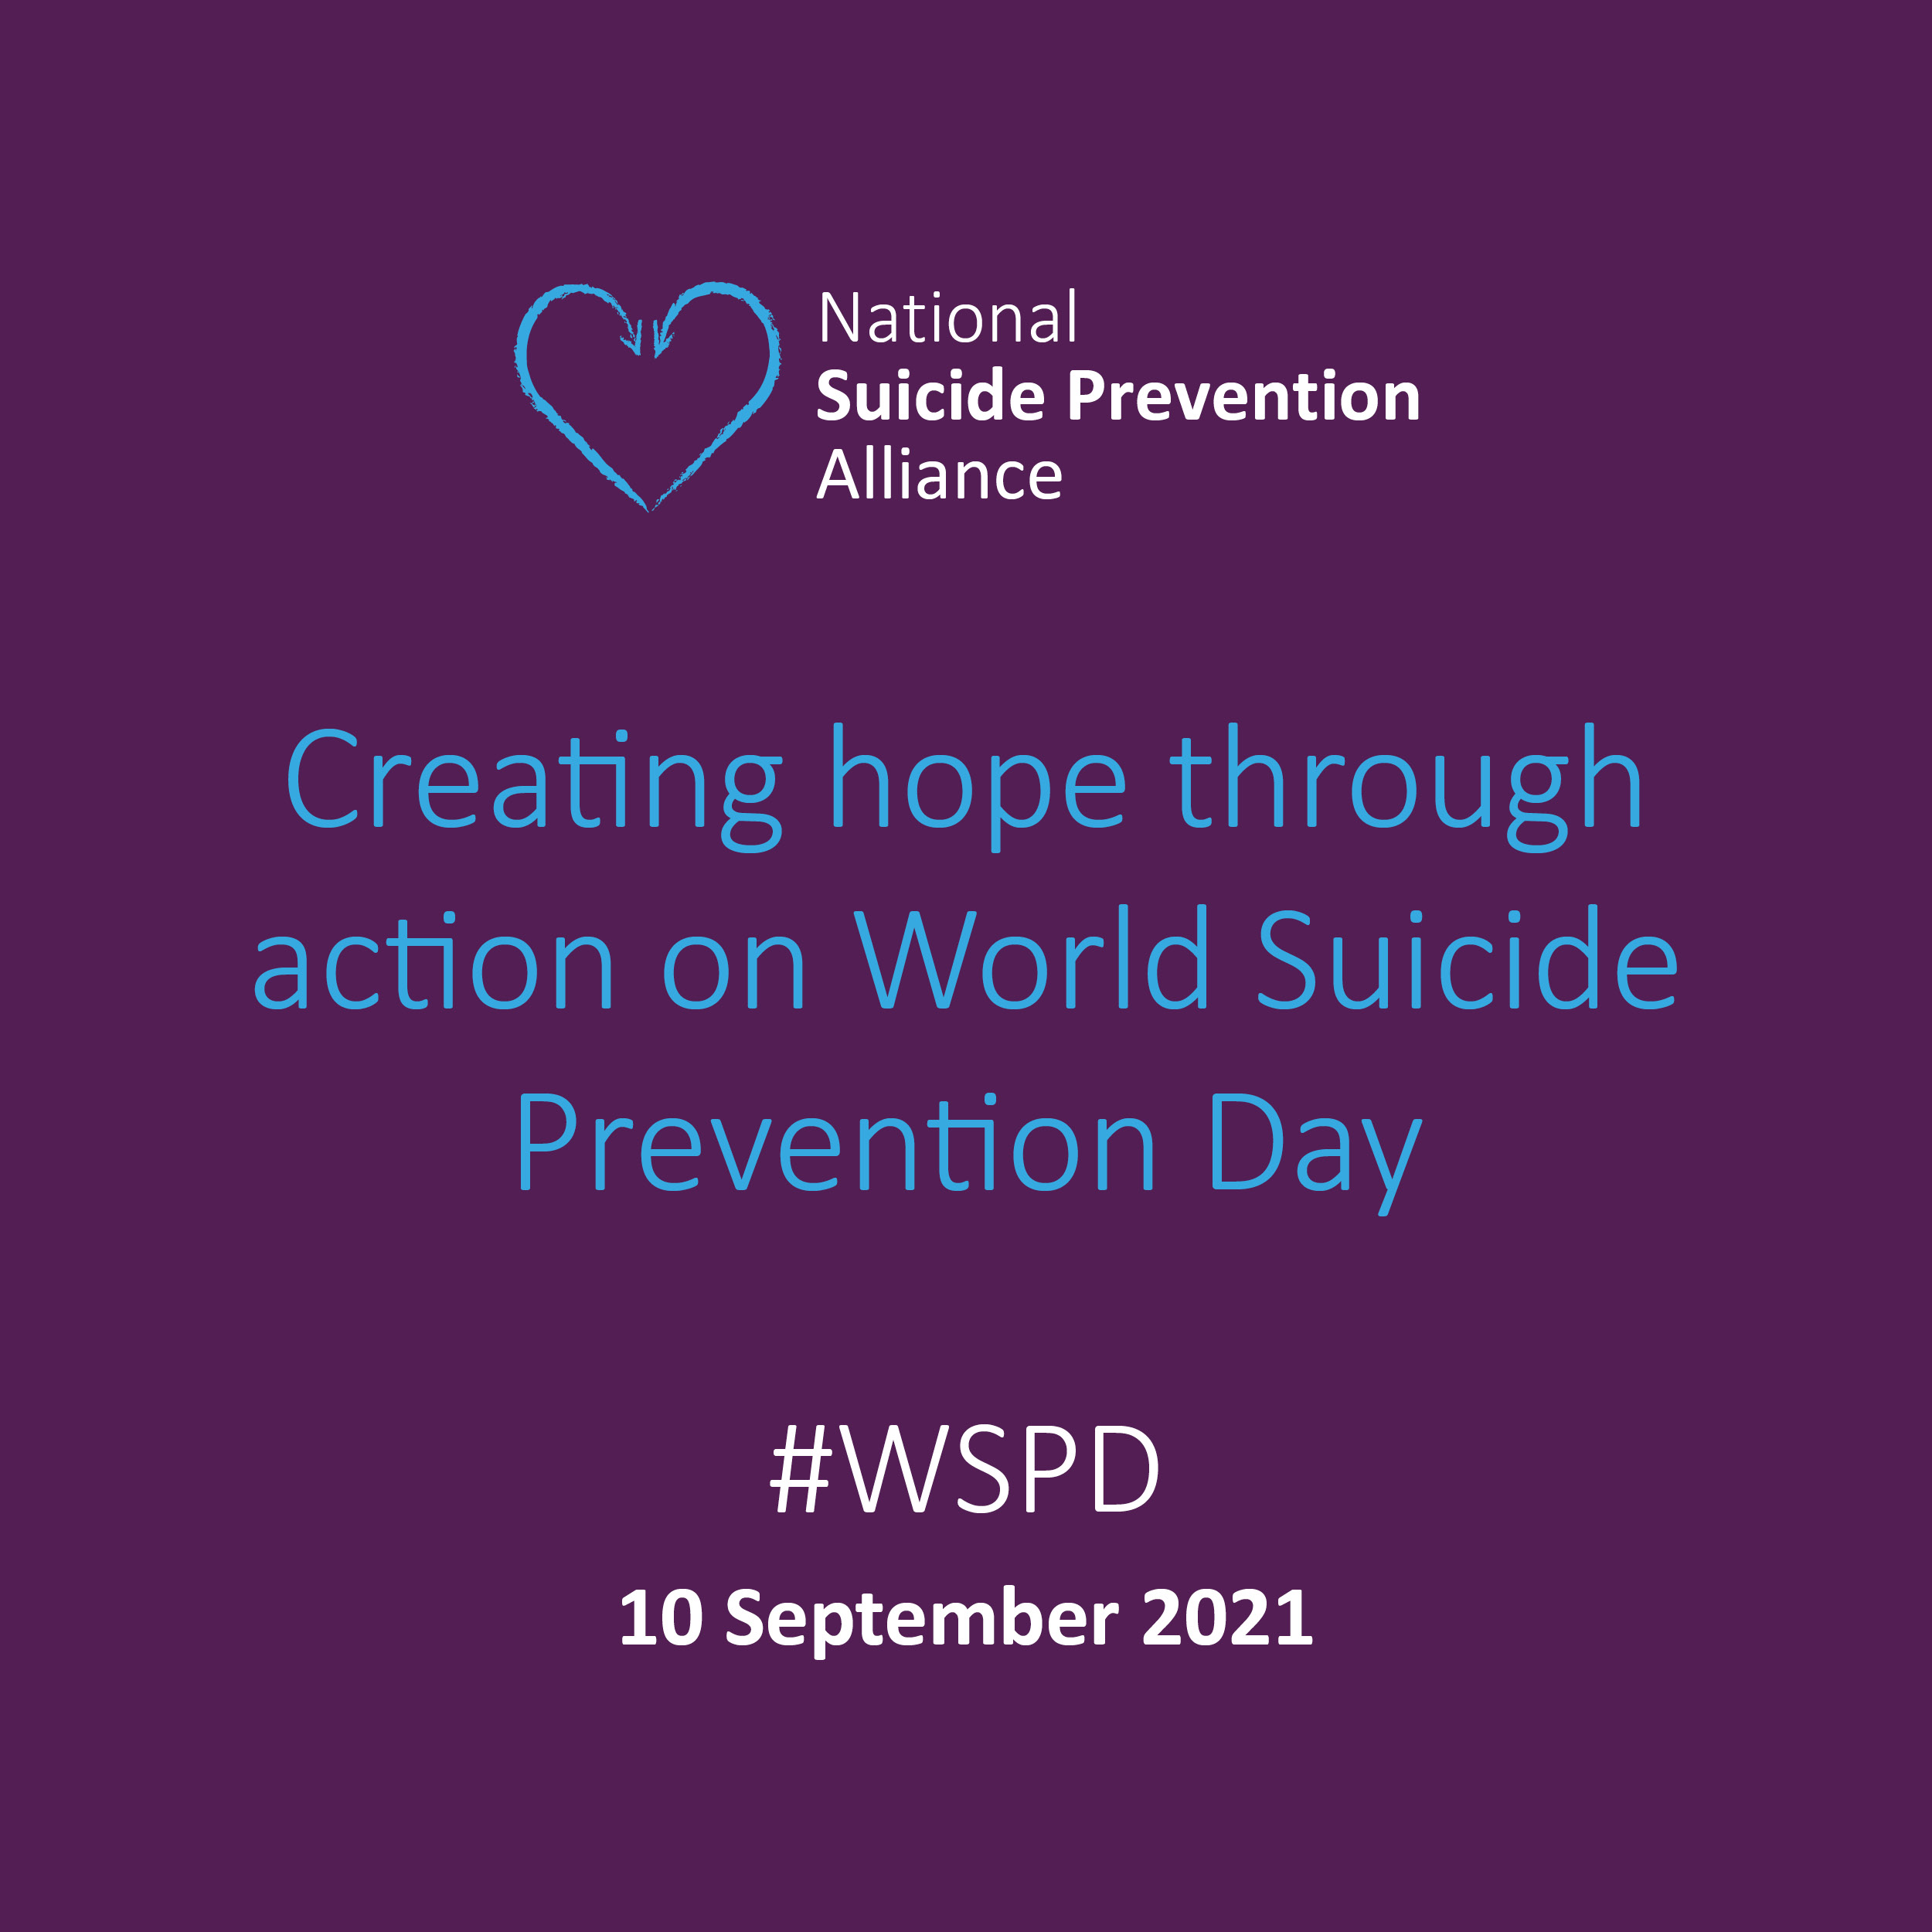 Creating hope through action. September 10. International Association for Suicide Prevention. World Suicide prevention day.